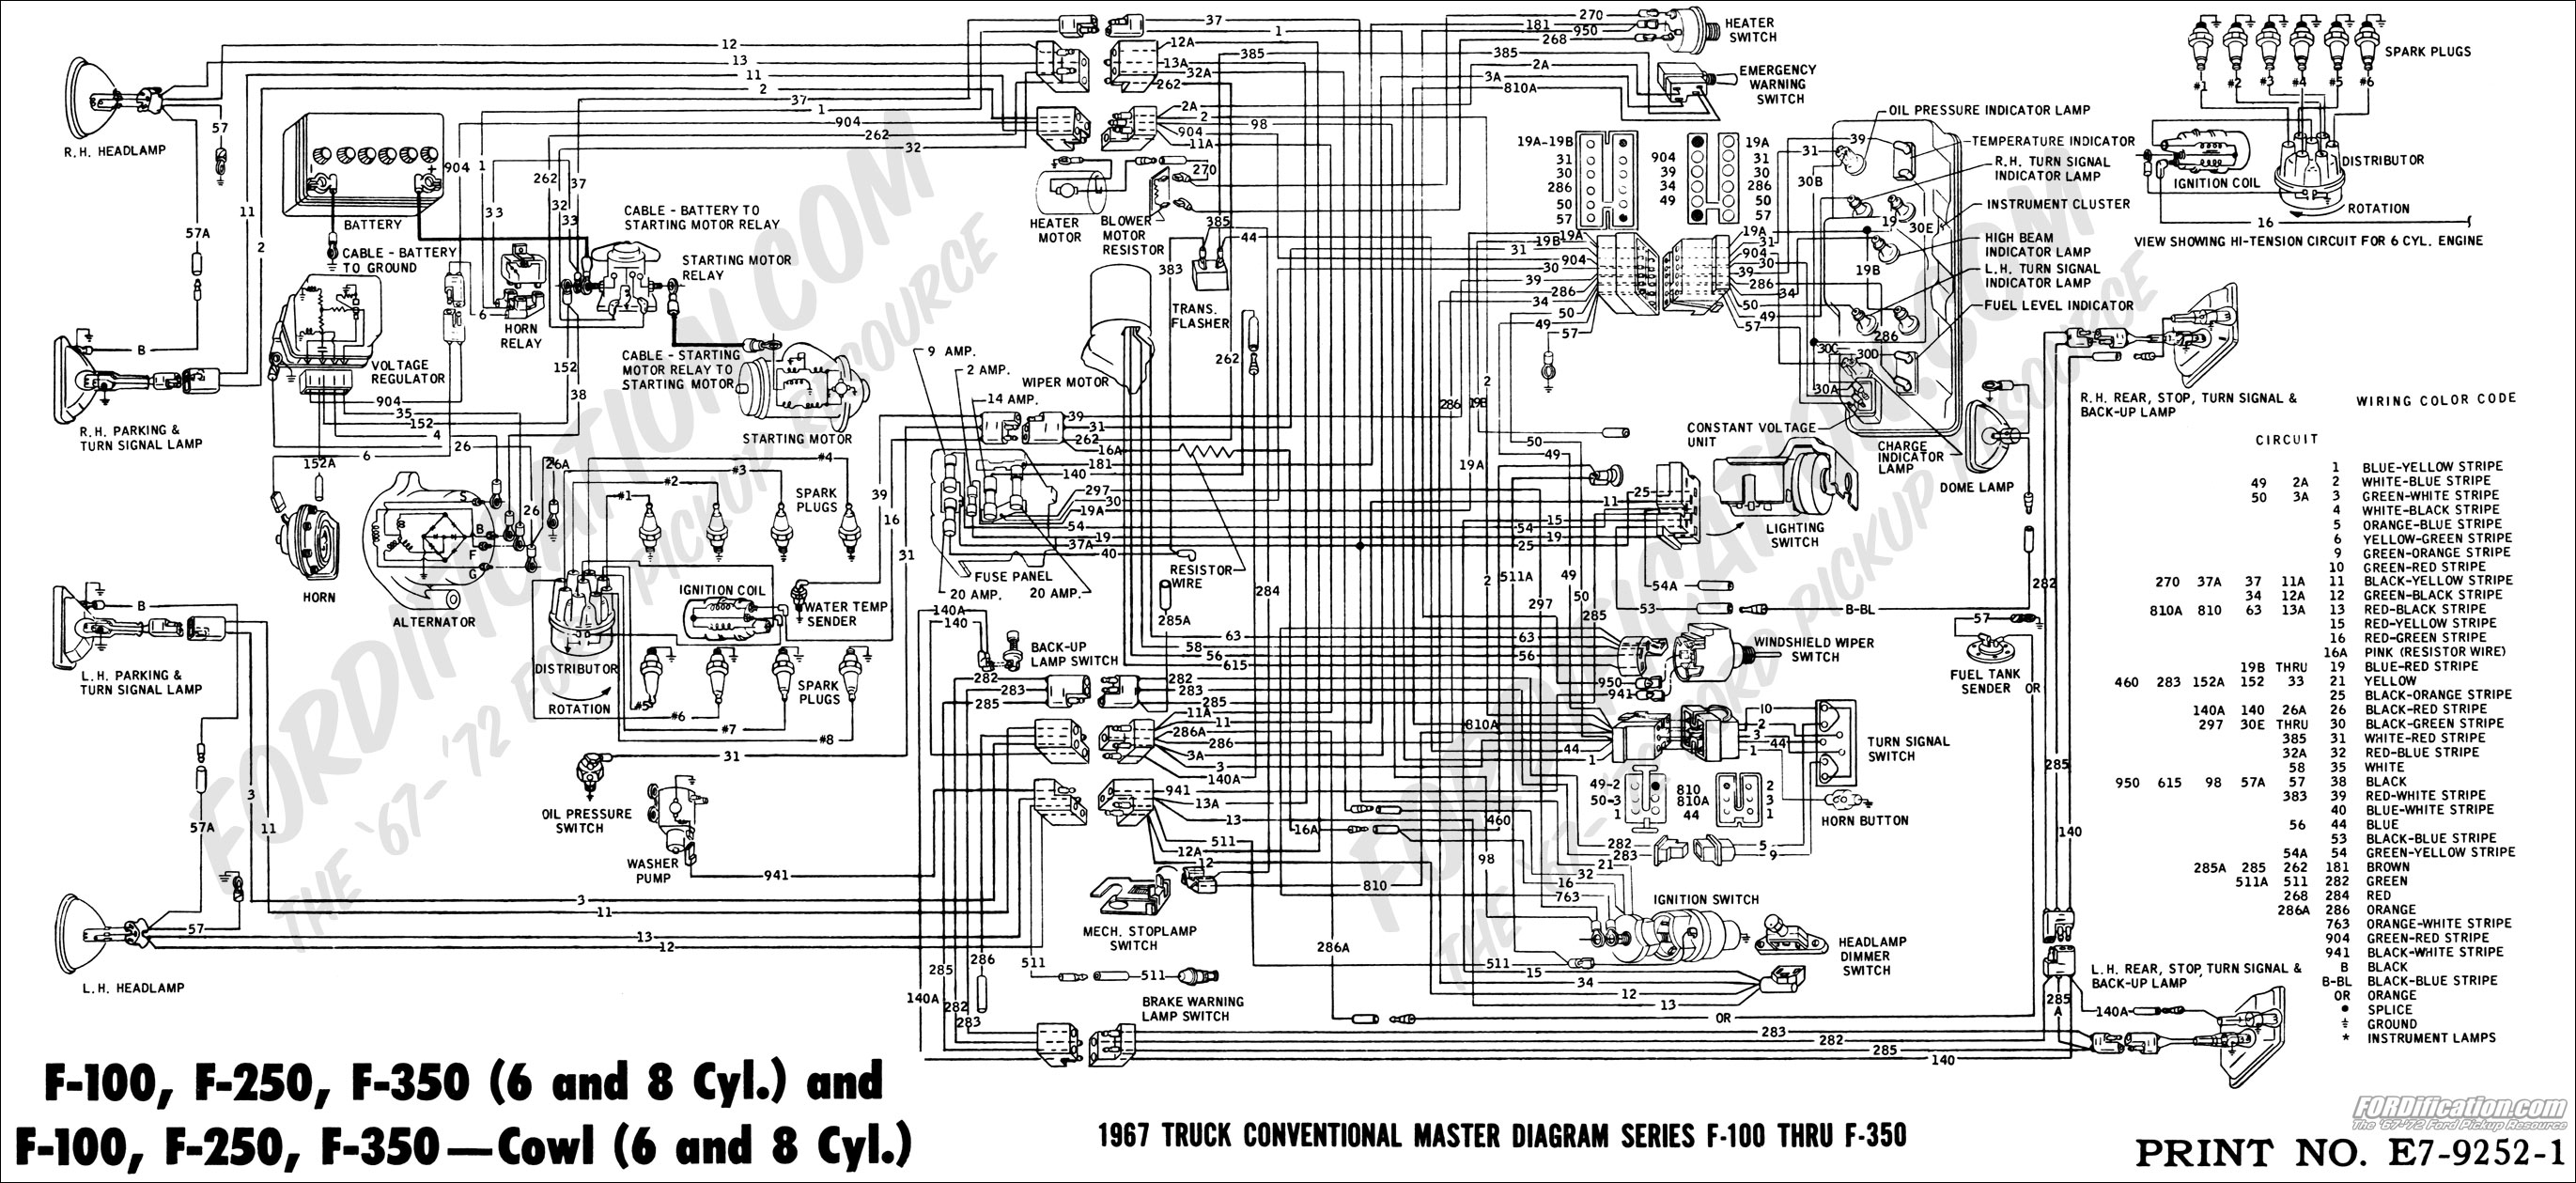 74 f100 help with wiring diagram ford truck enthusiasts forums ford truck wiring diagrams f100 wiring schematics wiring diagrams rh boltsoft net